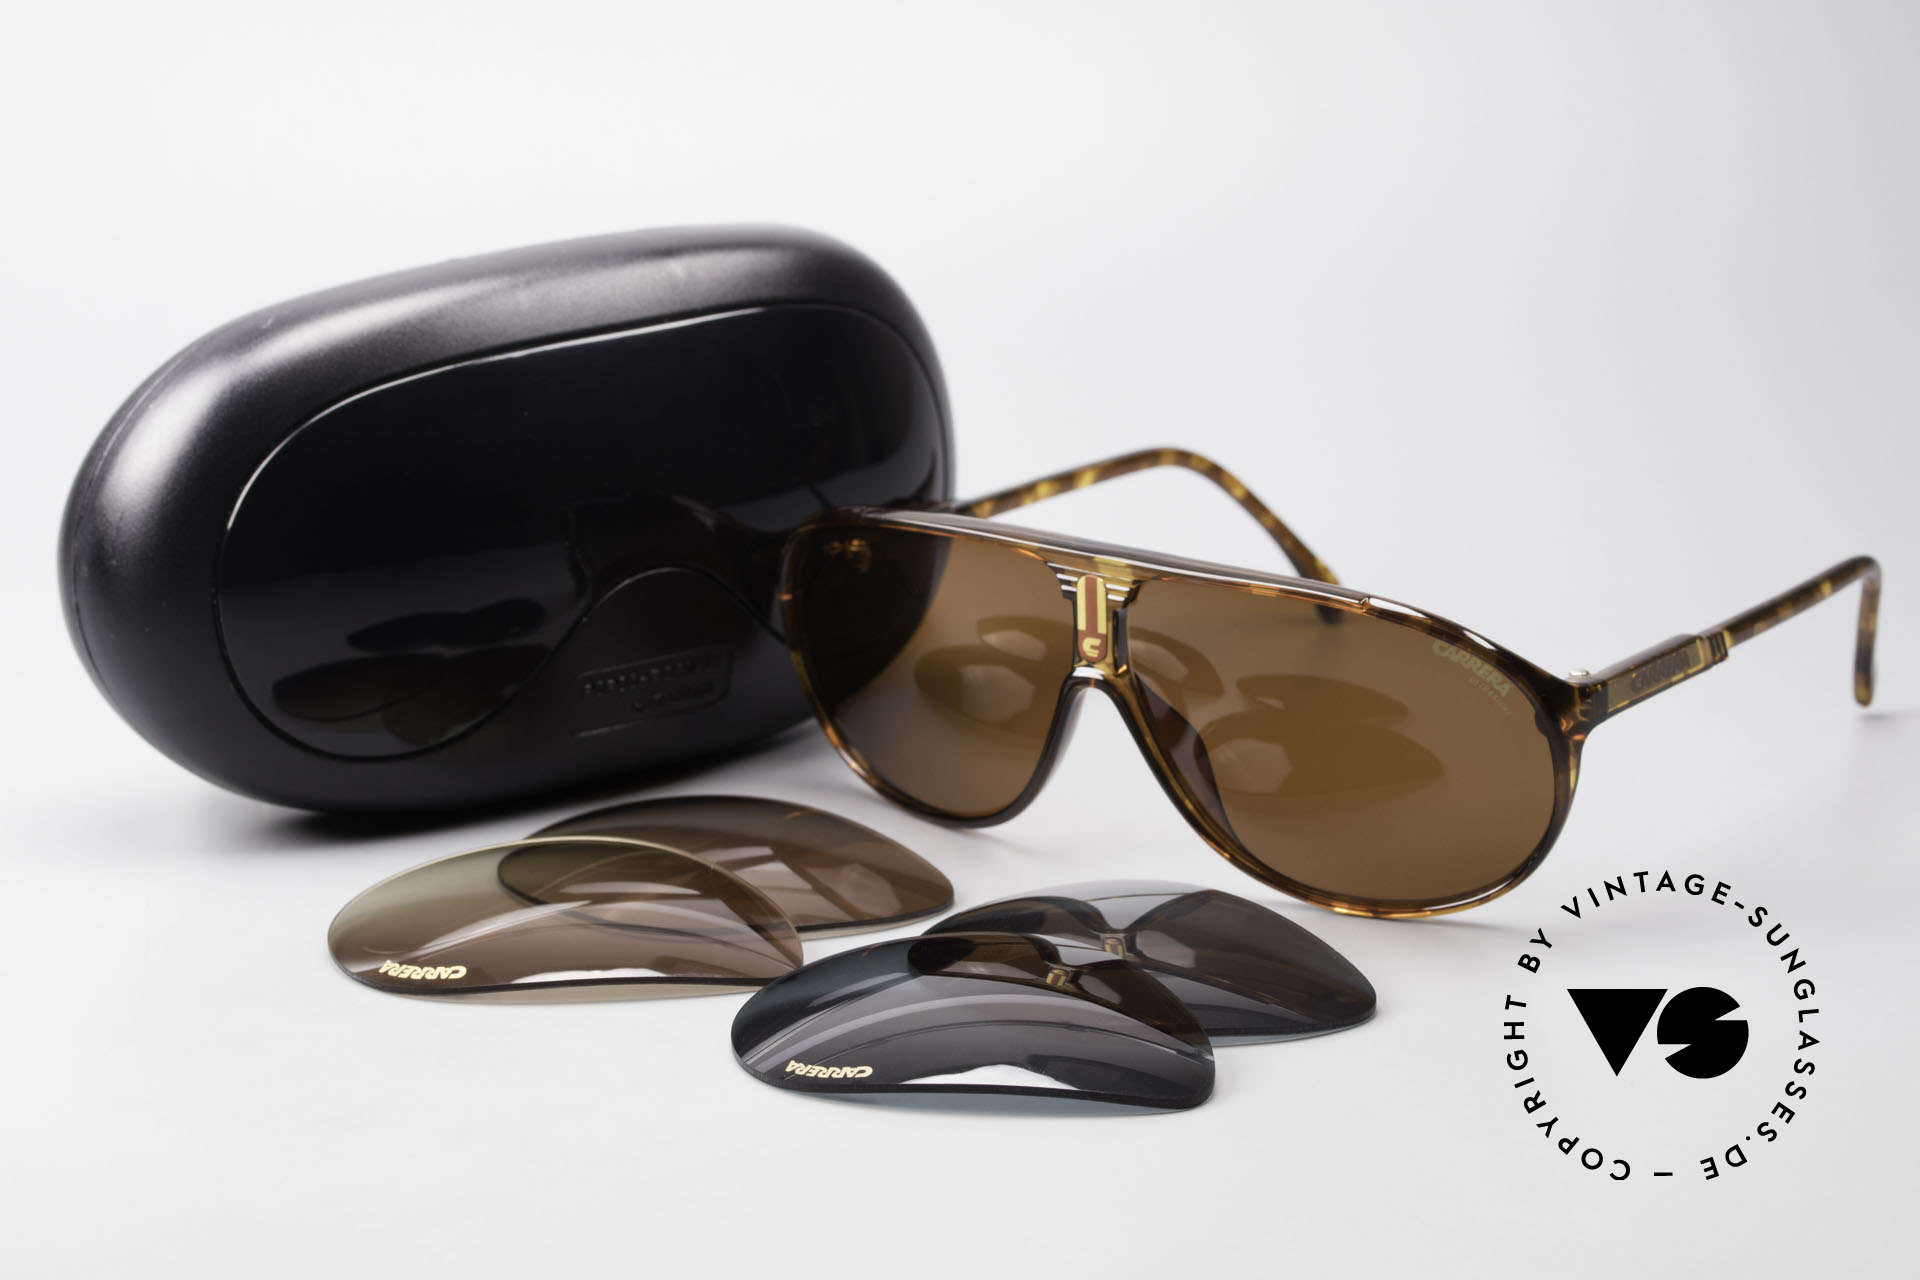 Carrera 5412 80's Frame 3 Sets Of Sun Lenses, NO RETRO SHADES, but an app. 30 years old ORIGINAL!, Made for Men and Women